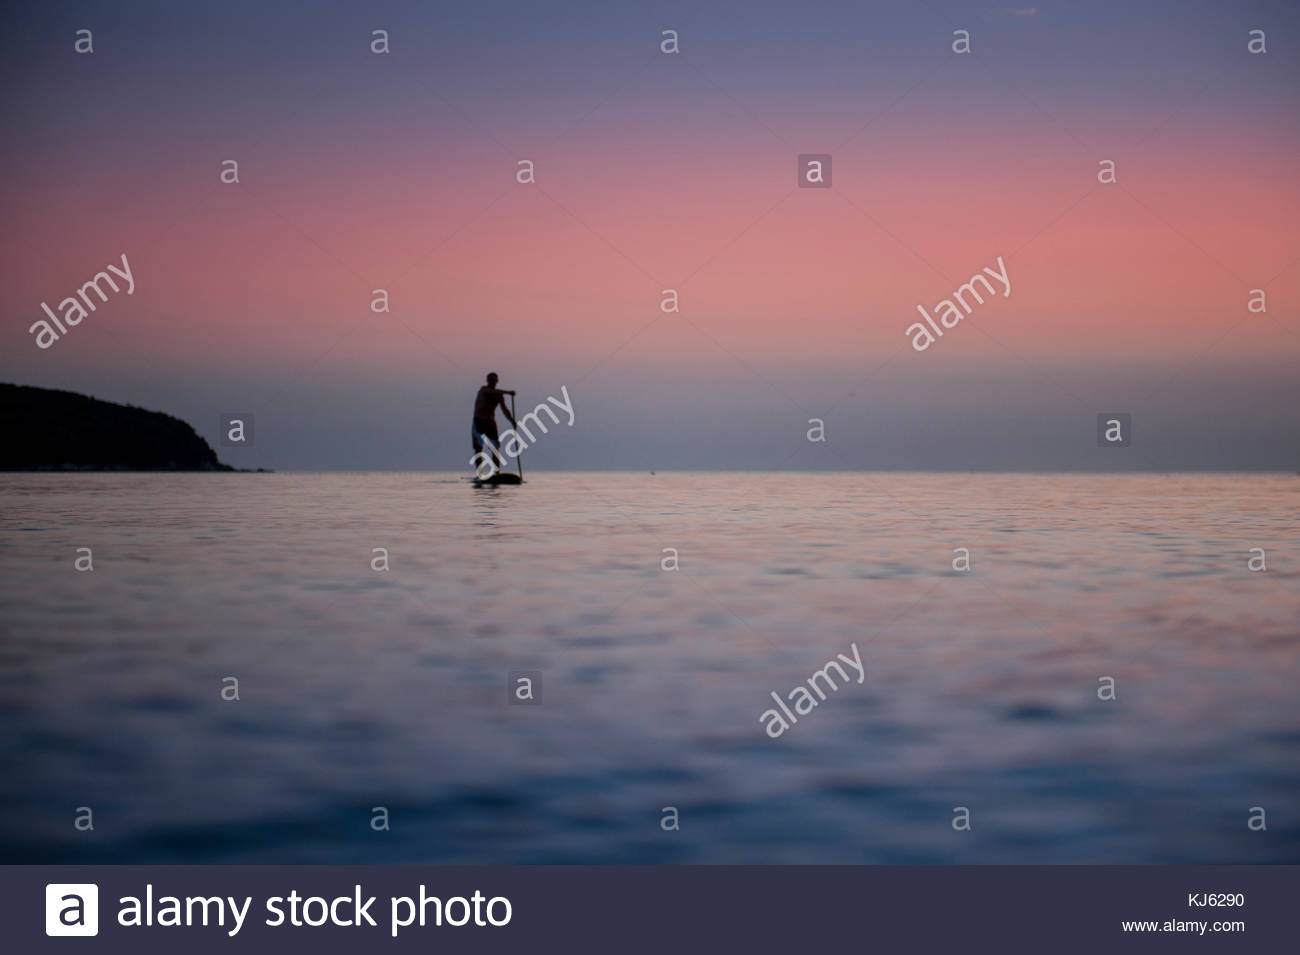 Standup paddle boarding on the Adriatic - Stock Image